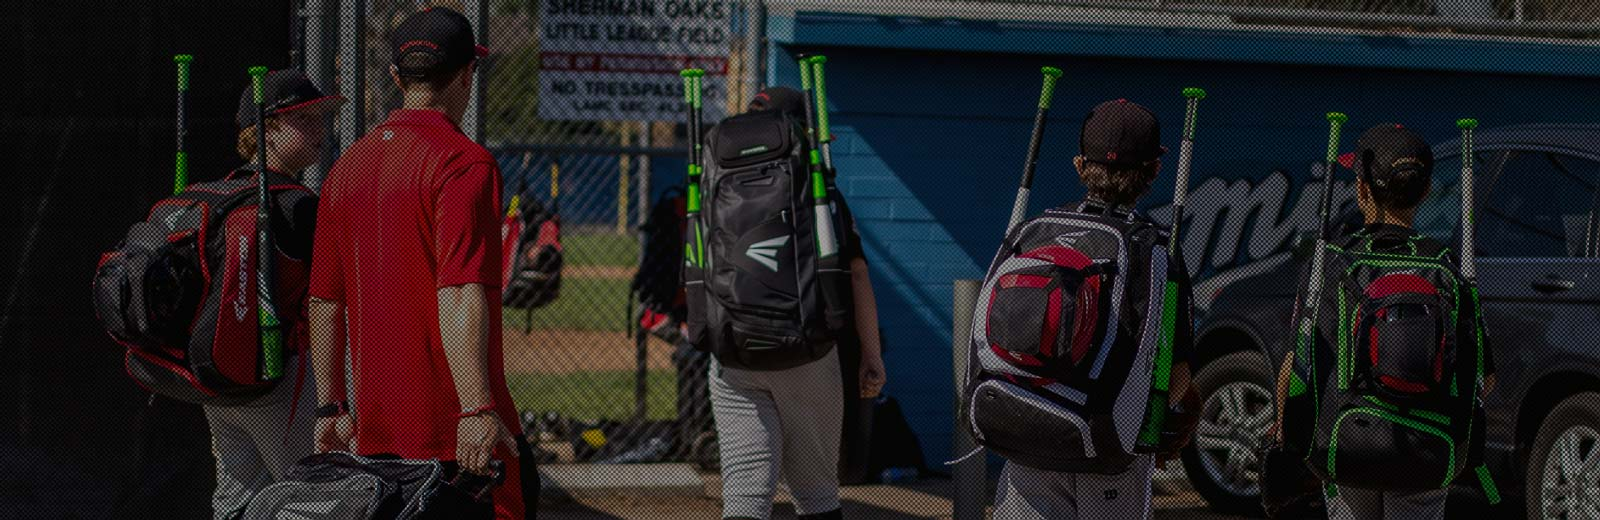 Team Equipment for Baseball and Softball